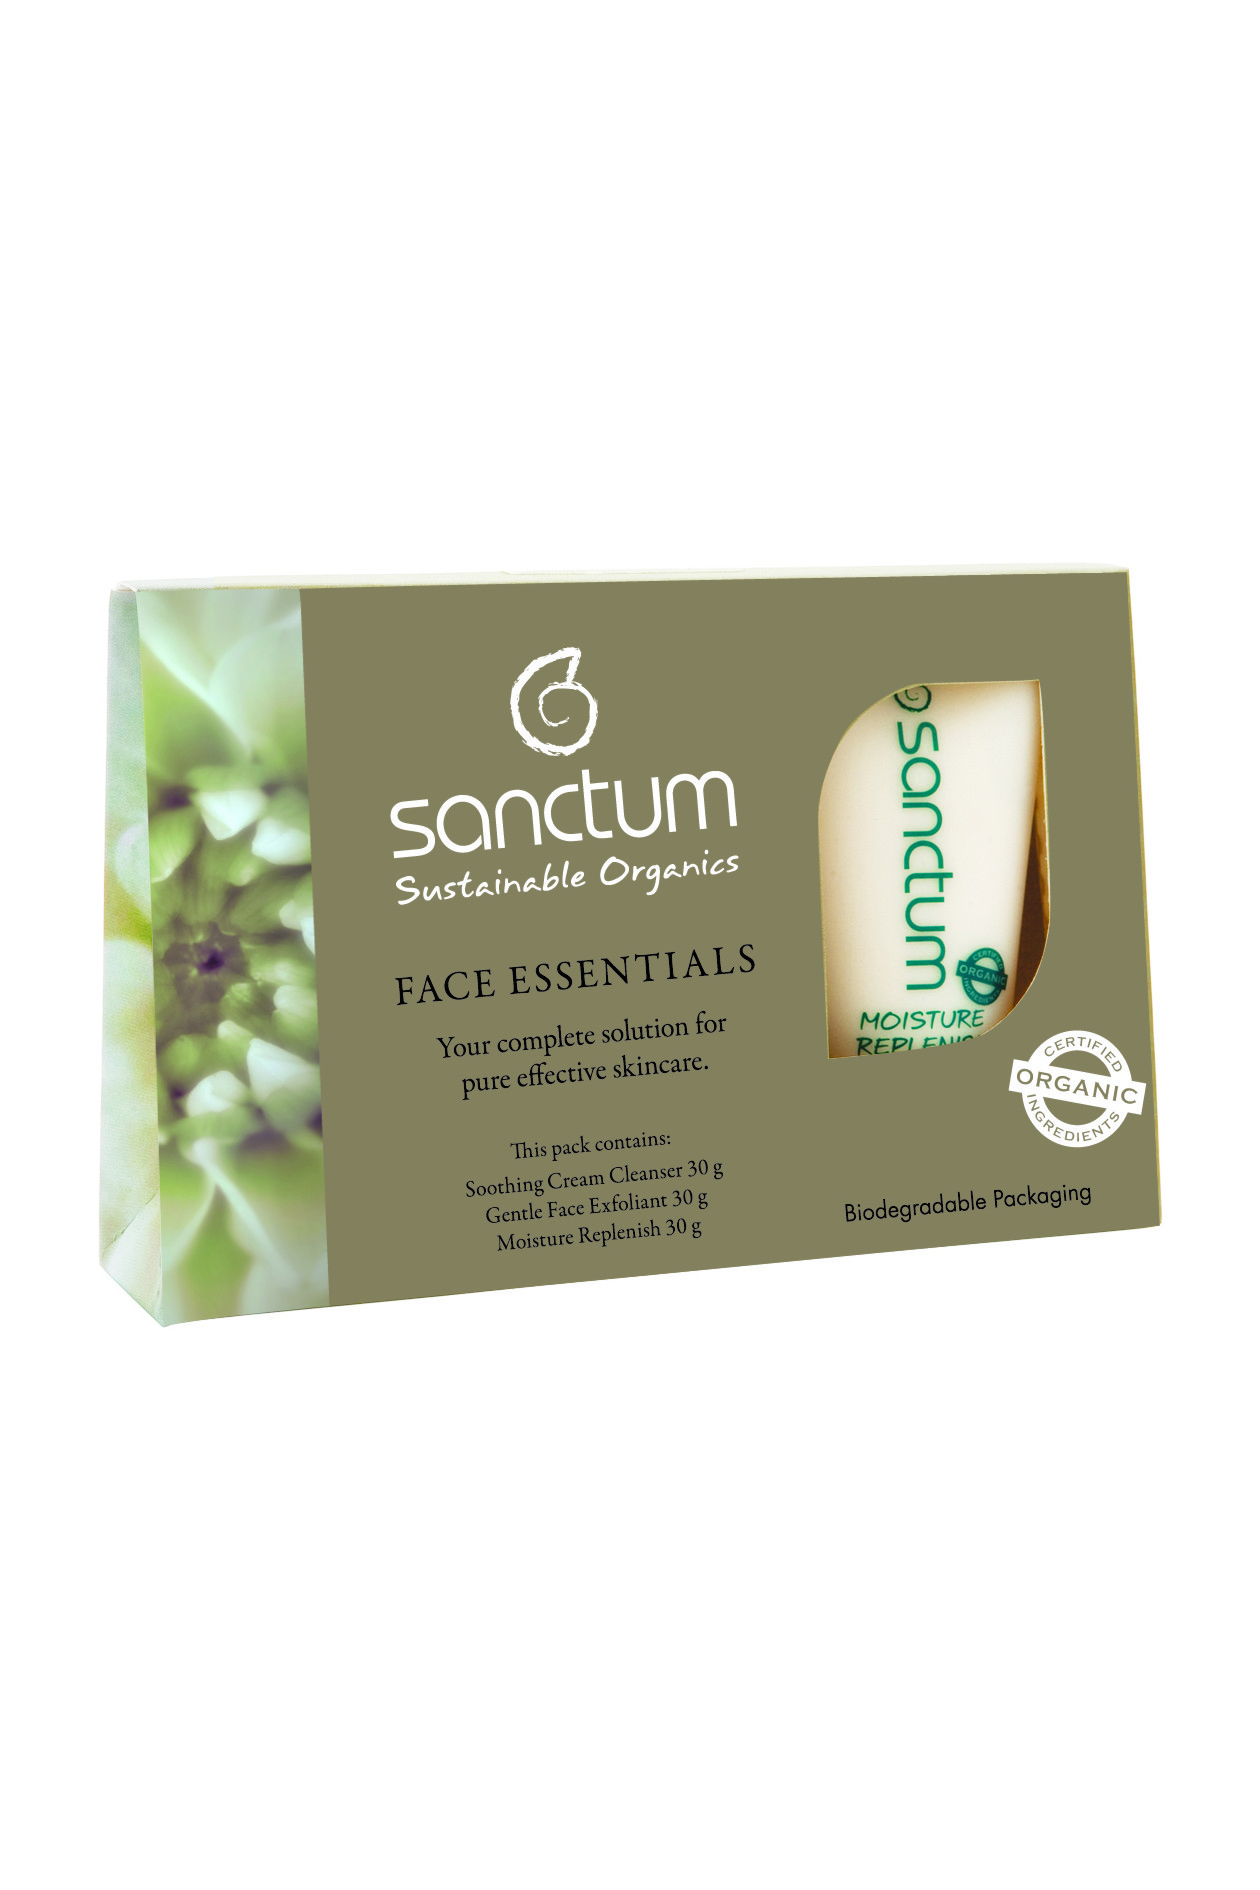 Sanctum Skin Essentials Travel Pack - 3 x 30ml